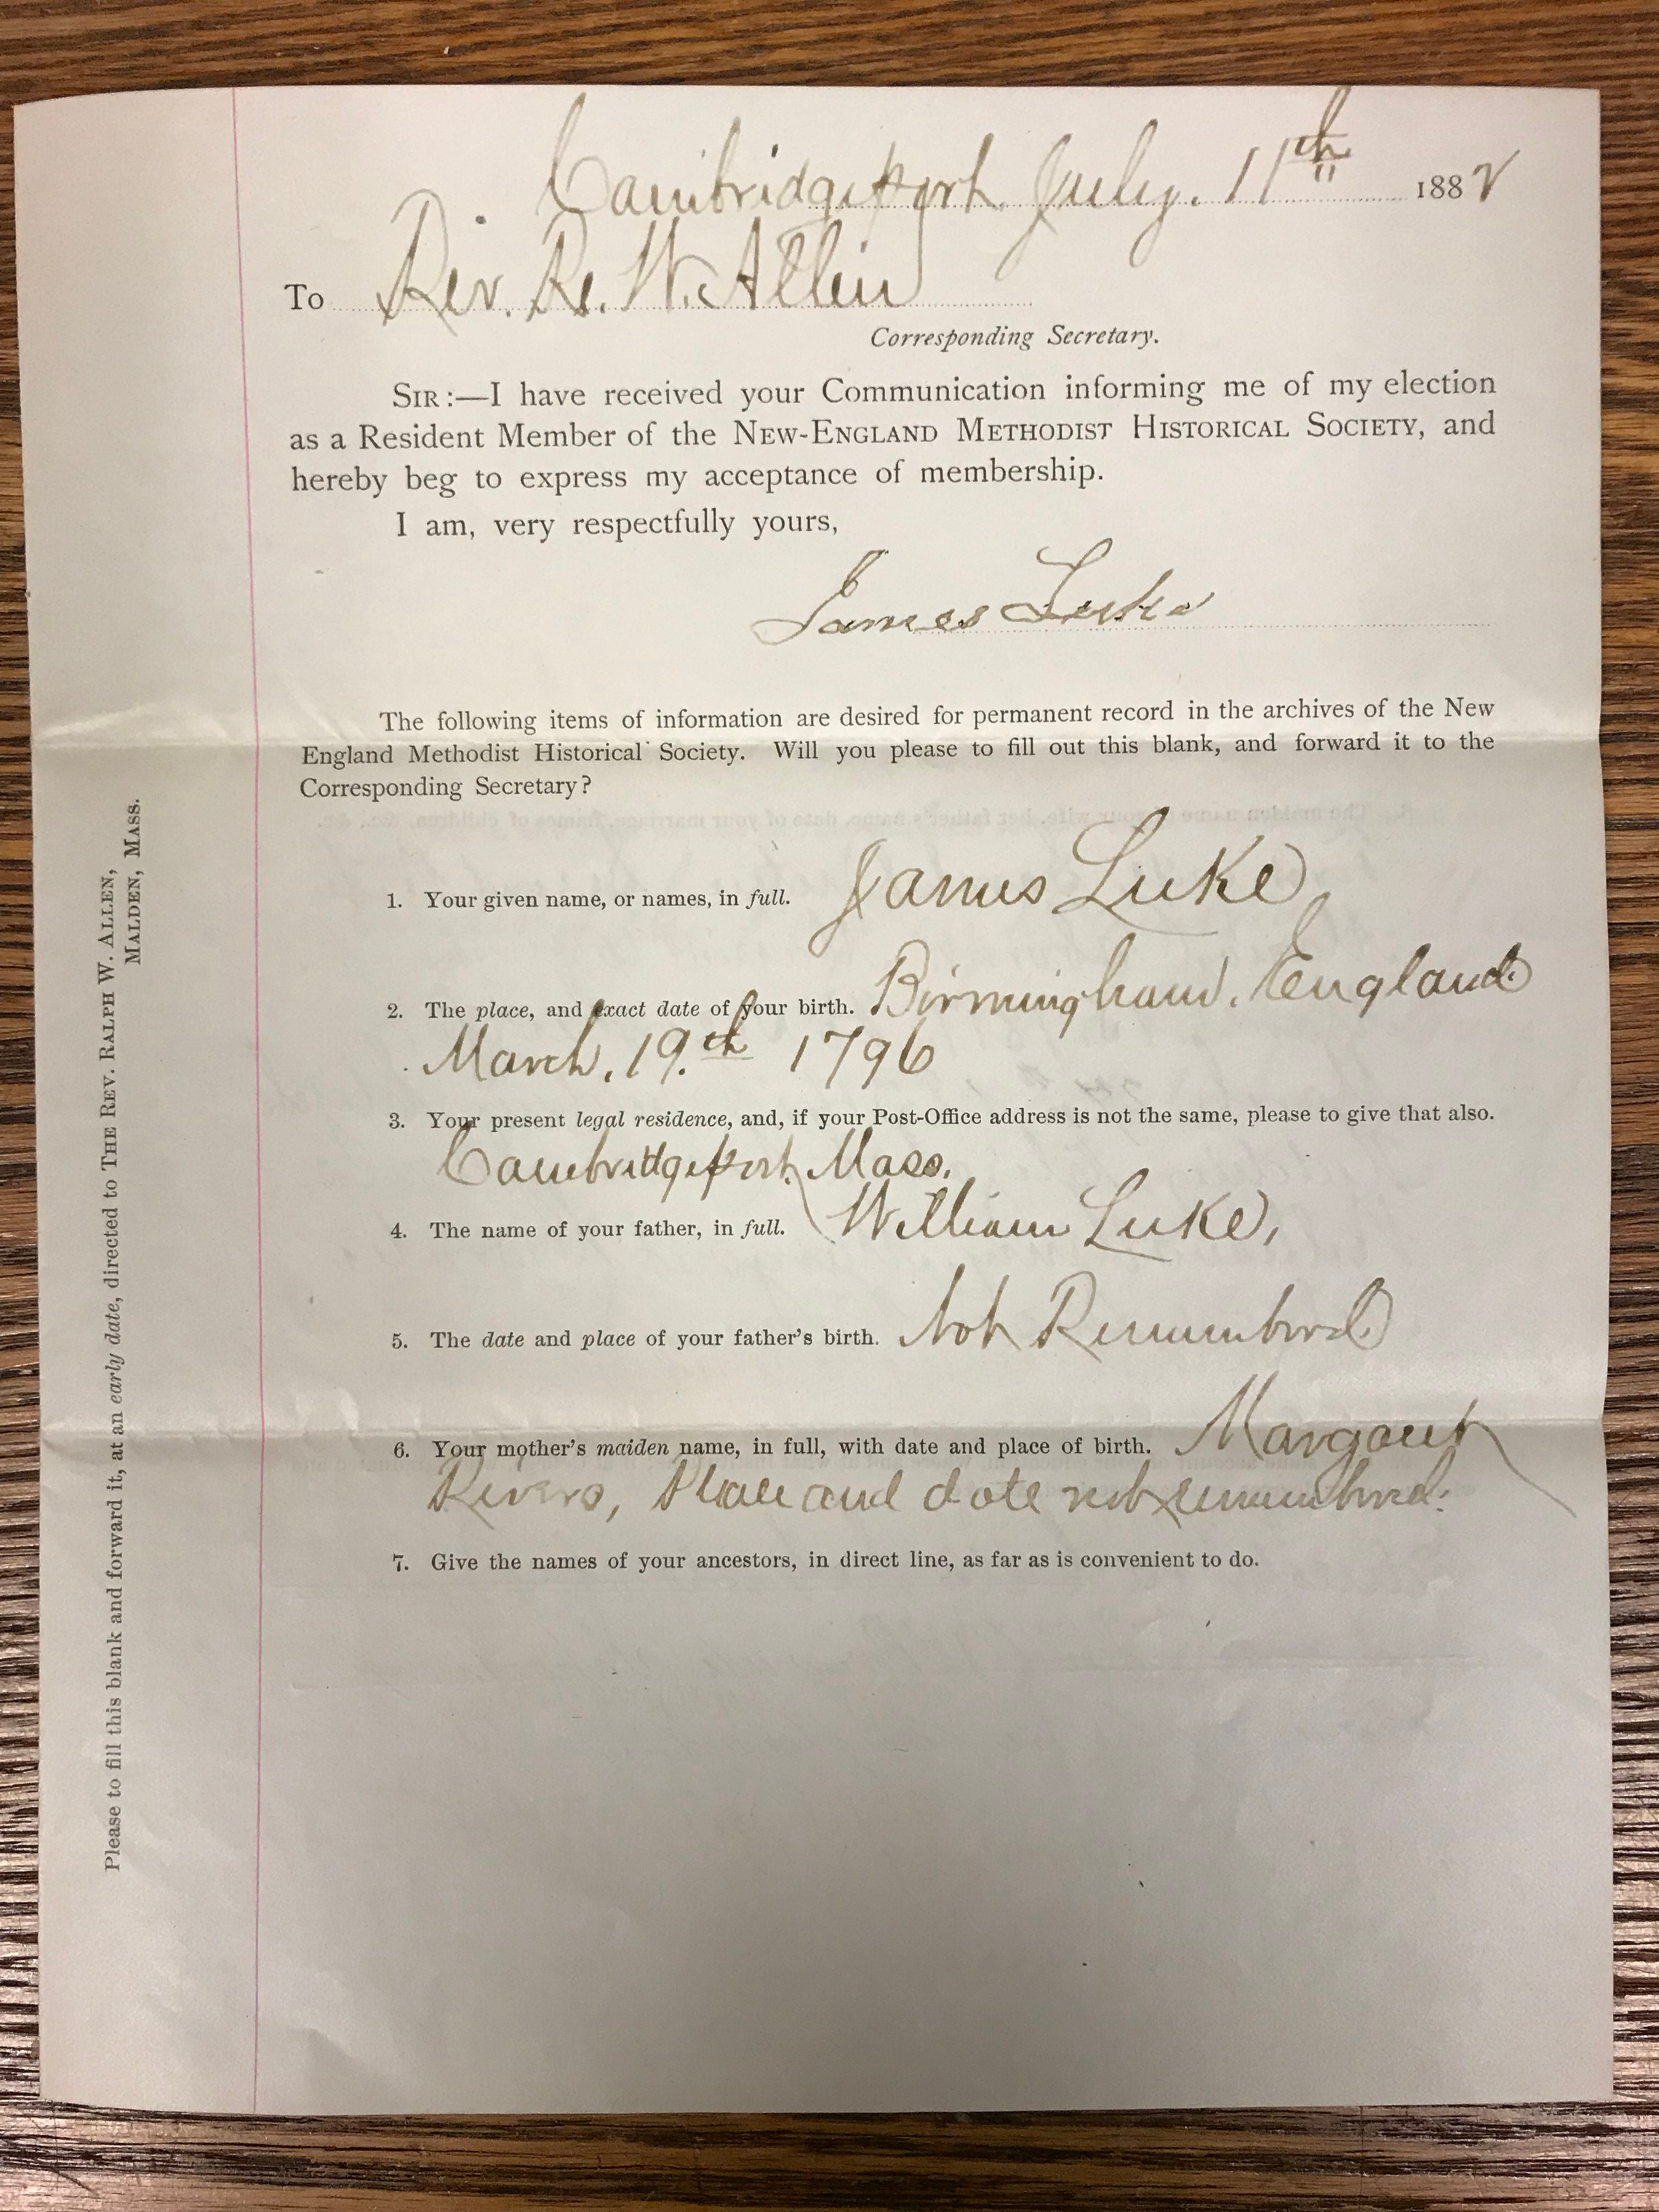 Federal Document Retrieval & Research